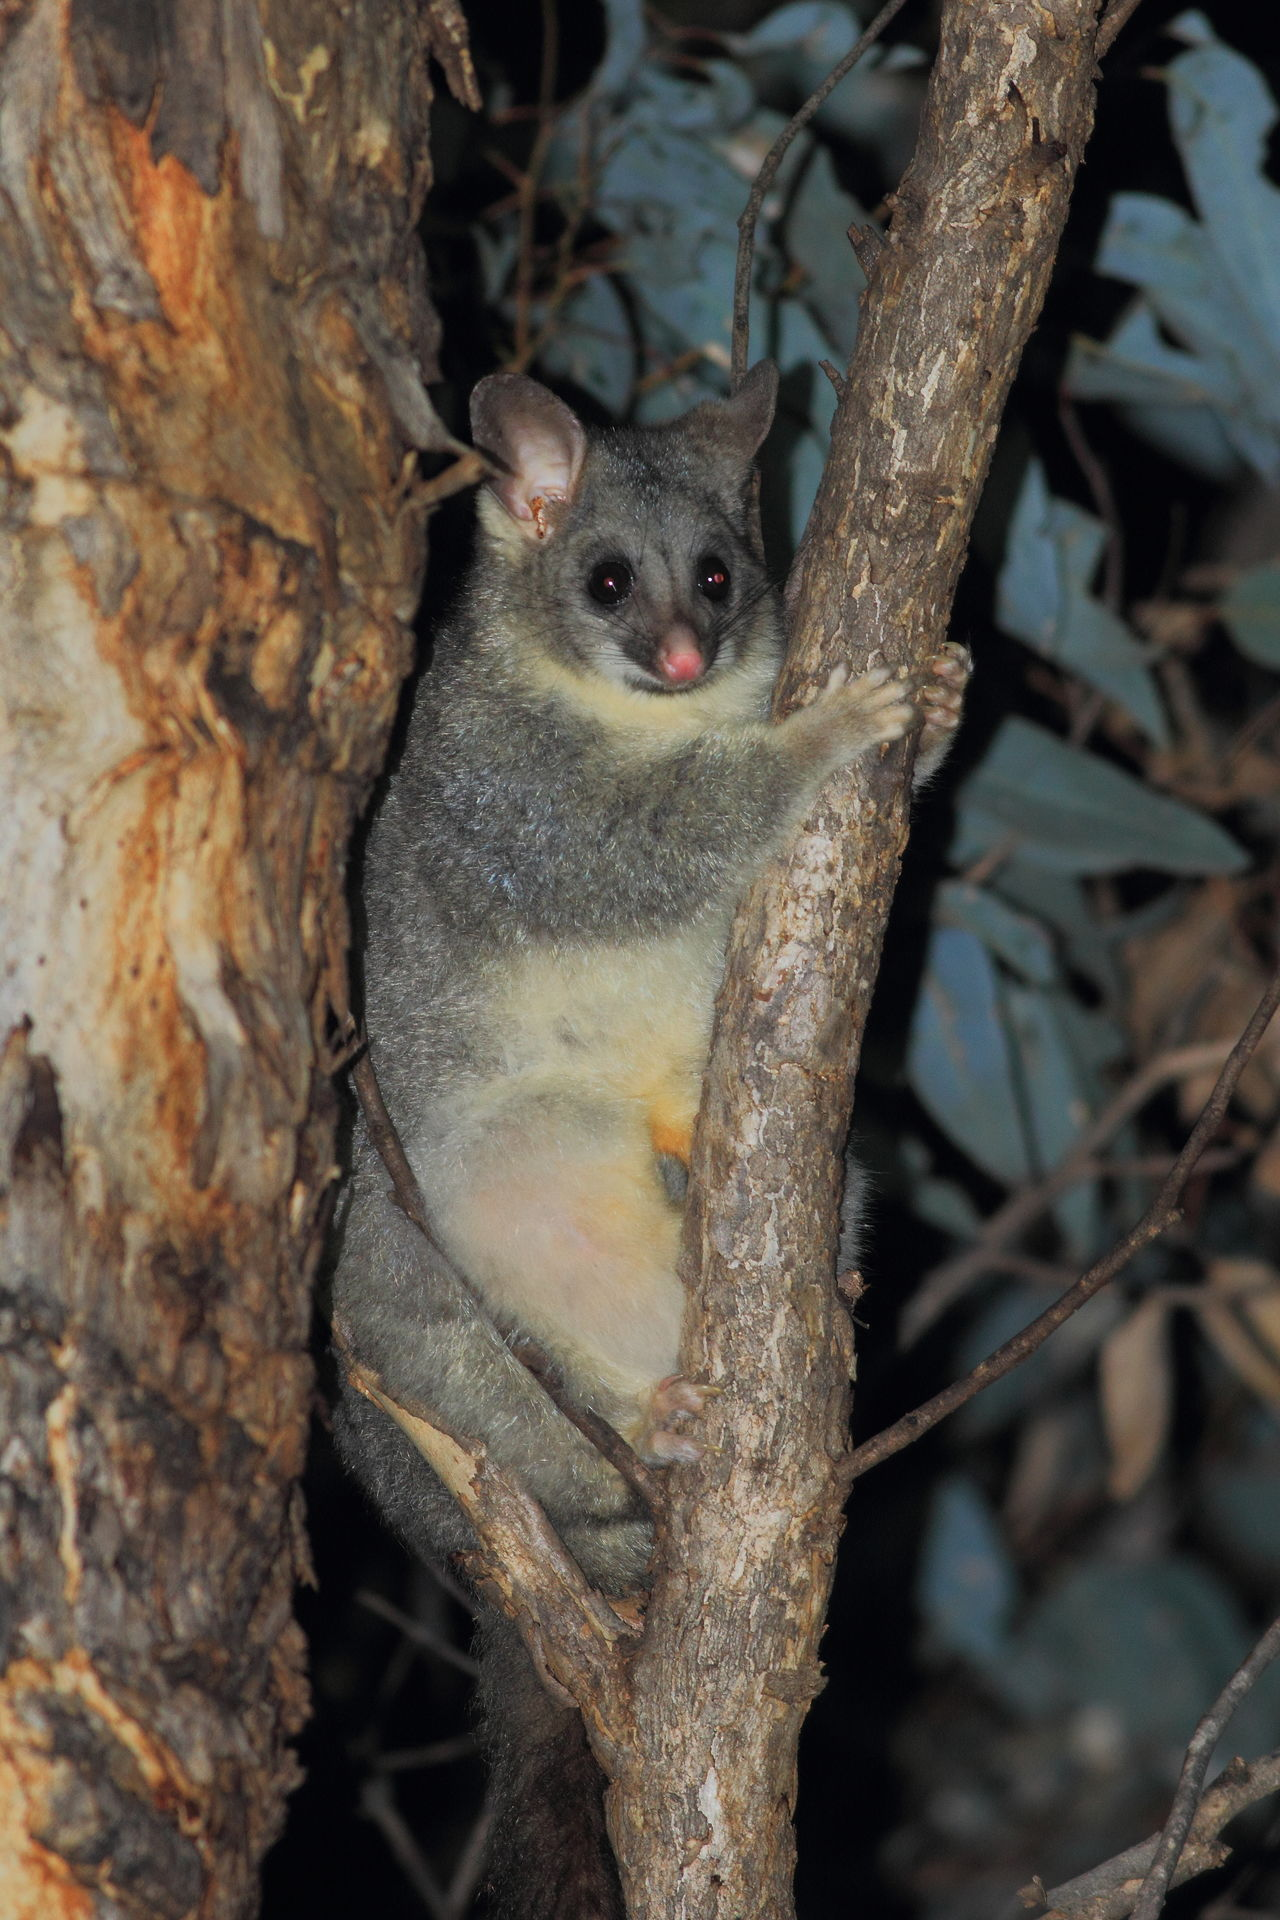 Australia Dryandra Forest Western Australia Animal Wildlife Animals In The Wild Nature Nocturnal Possum